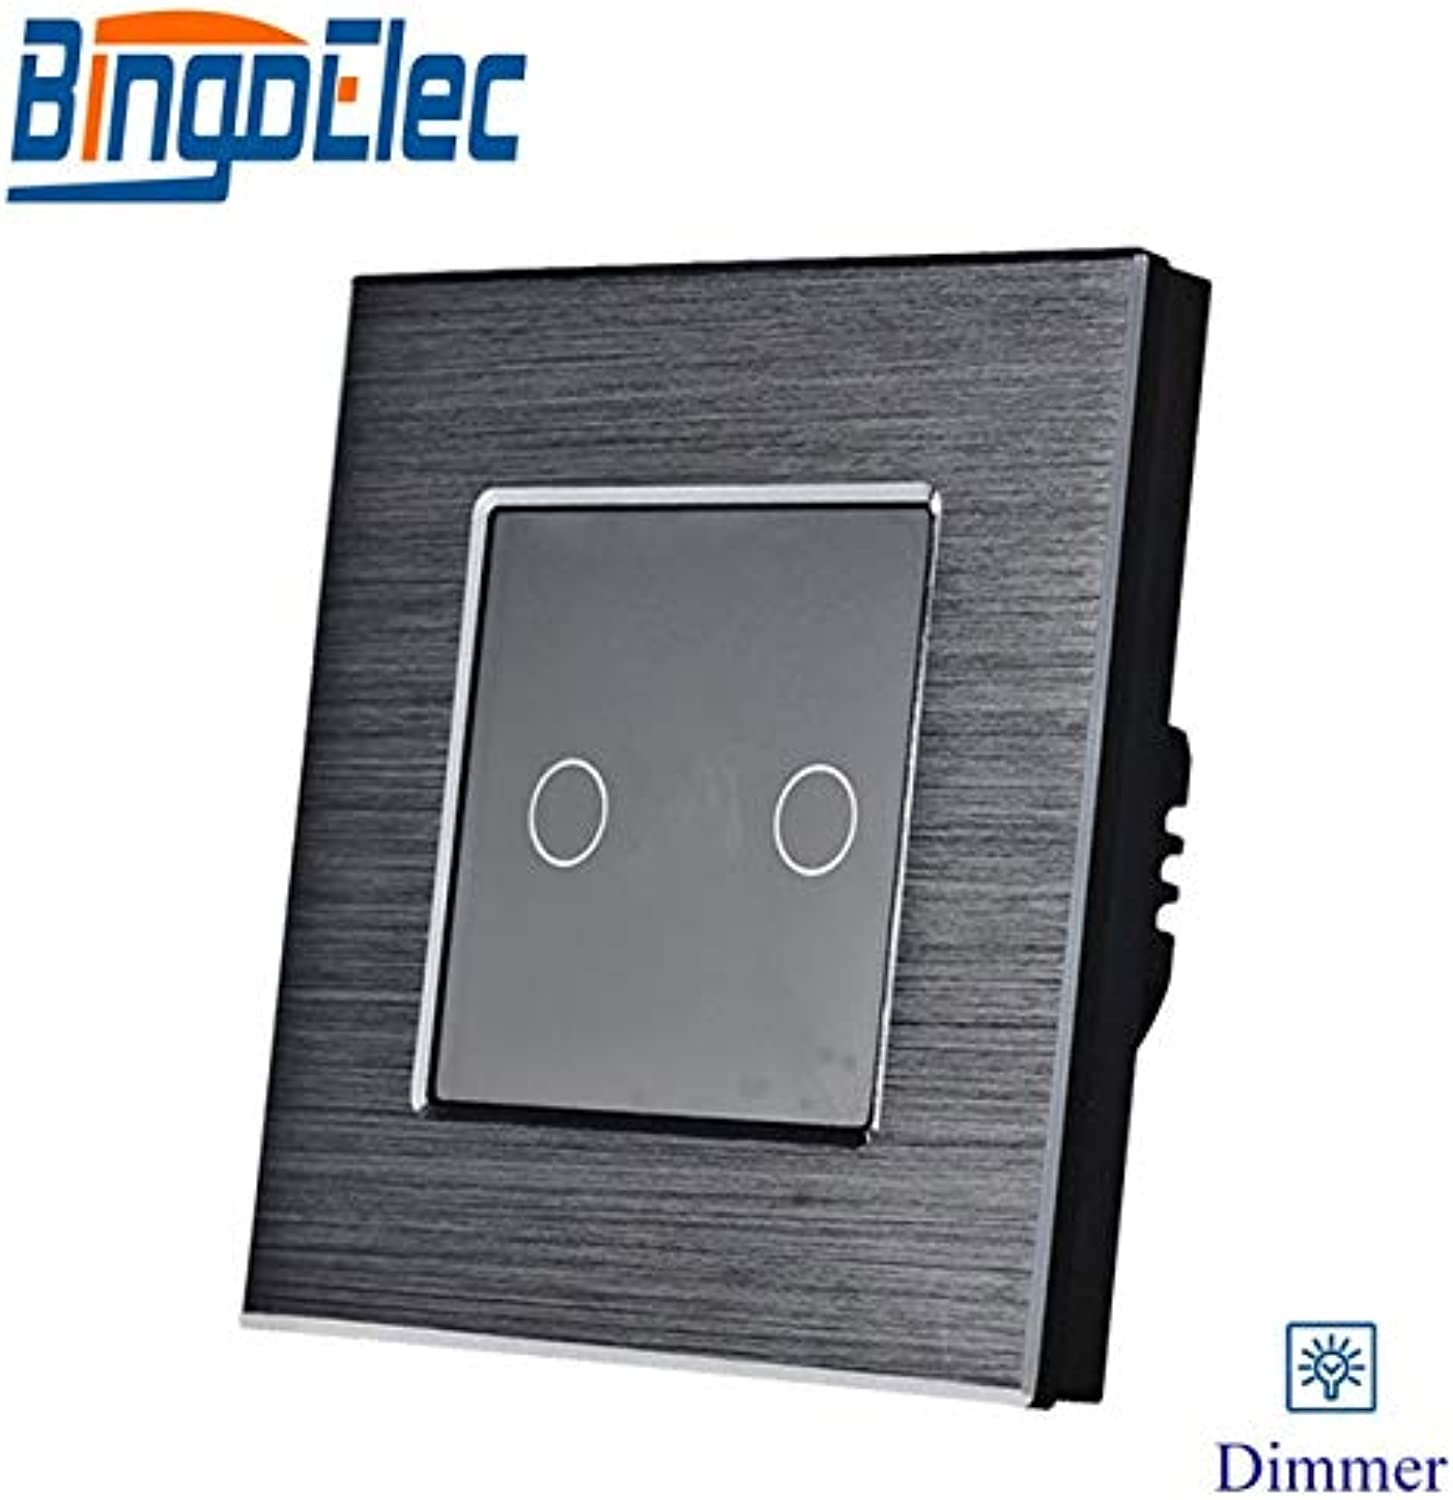 New Design 2gang 1way Touch Light dimmer Switch, Silver Aluminum and Black Glass Panel Fan Switch  (color  Black, Voltage  110240 V, Number of Gangs  2Gang, Standard  EU Standard)